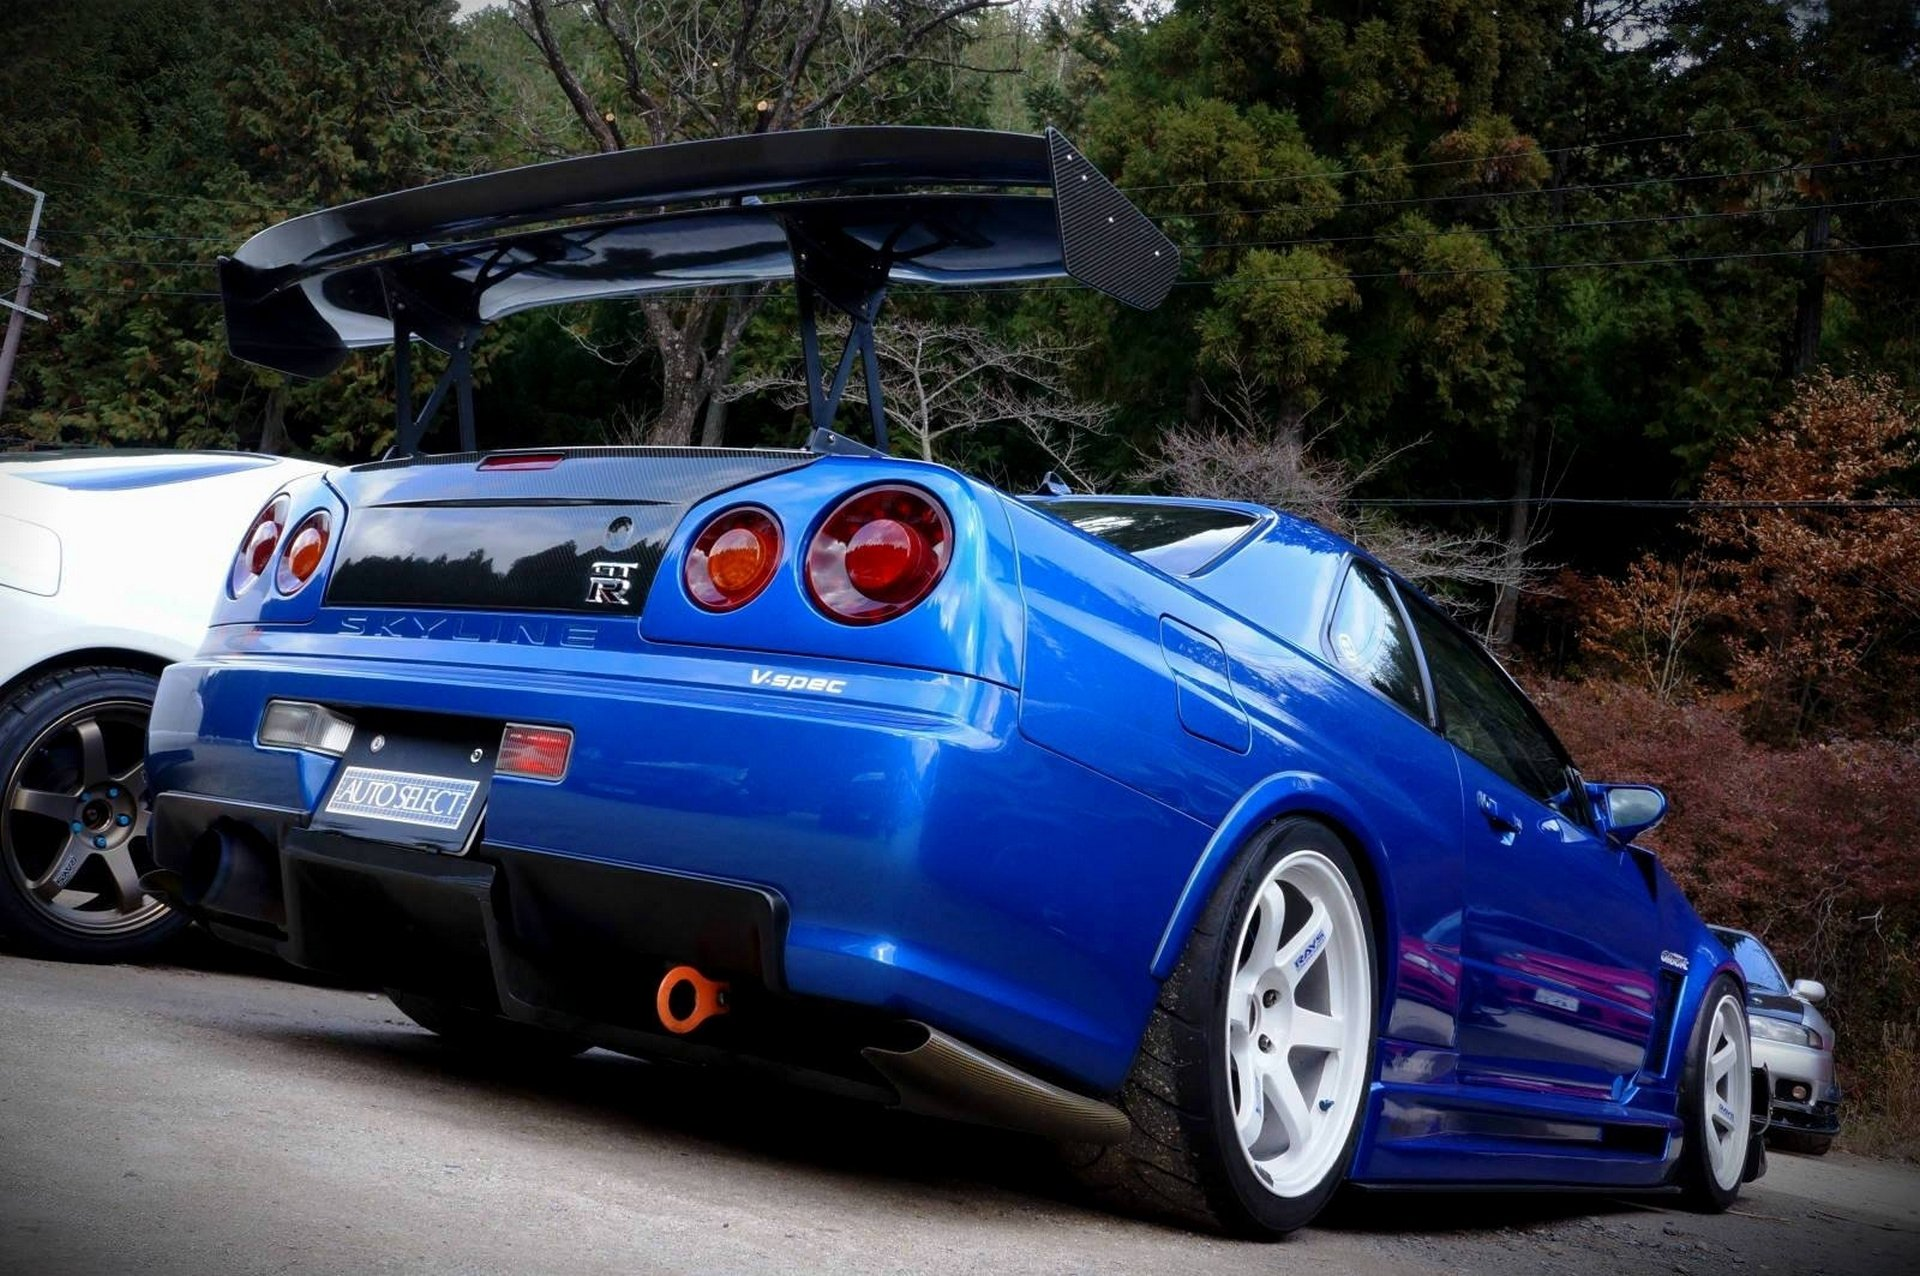 Nissan skyline r34 hd wallpaper background image 1920x1276 id 528171 wallpaper abyss - Nissan skyline background ...